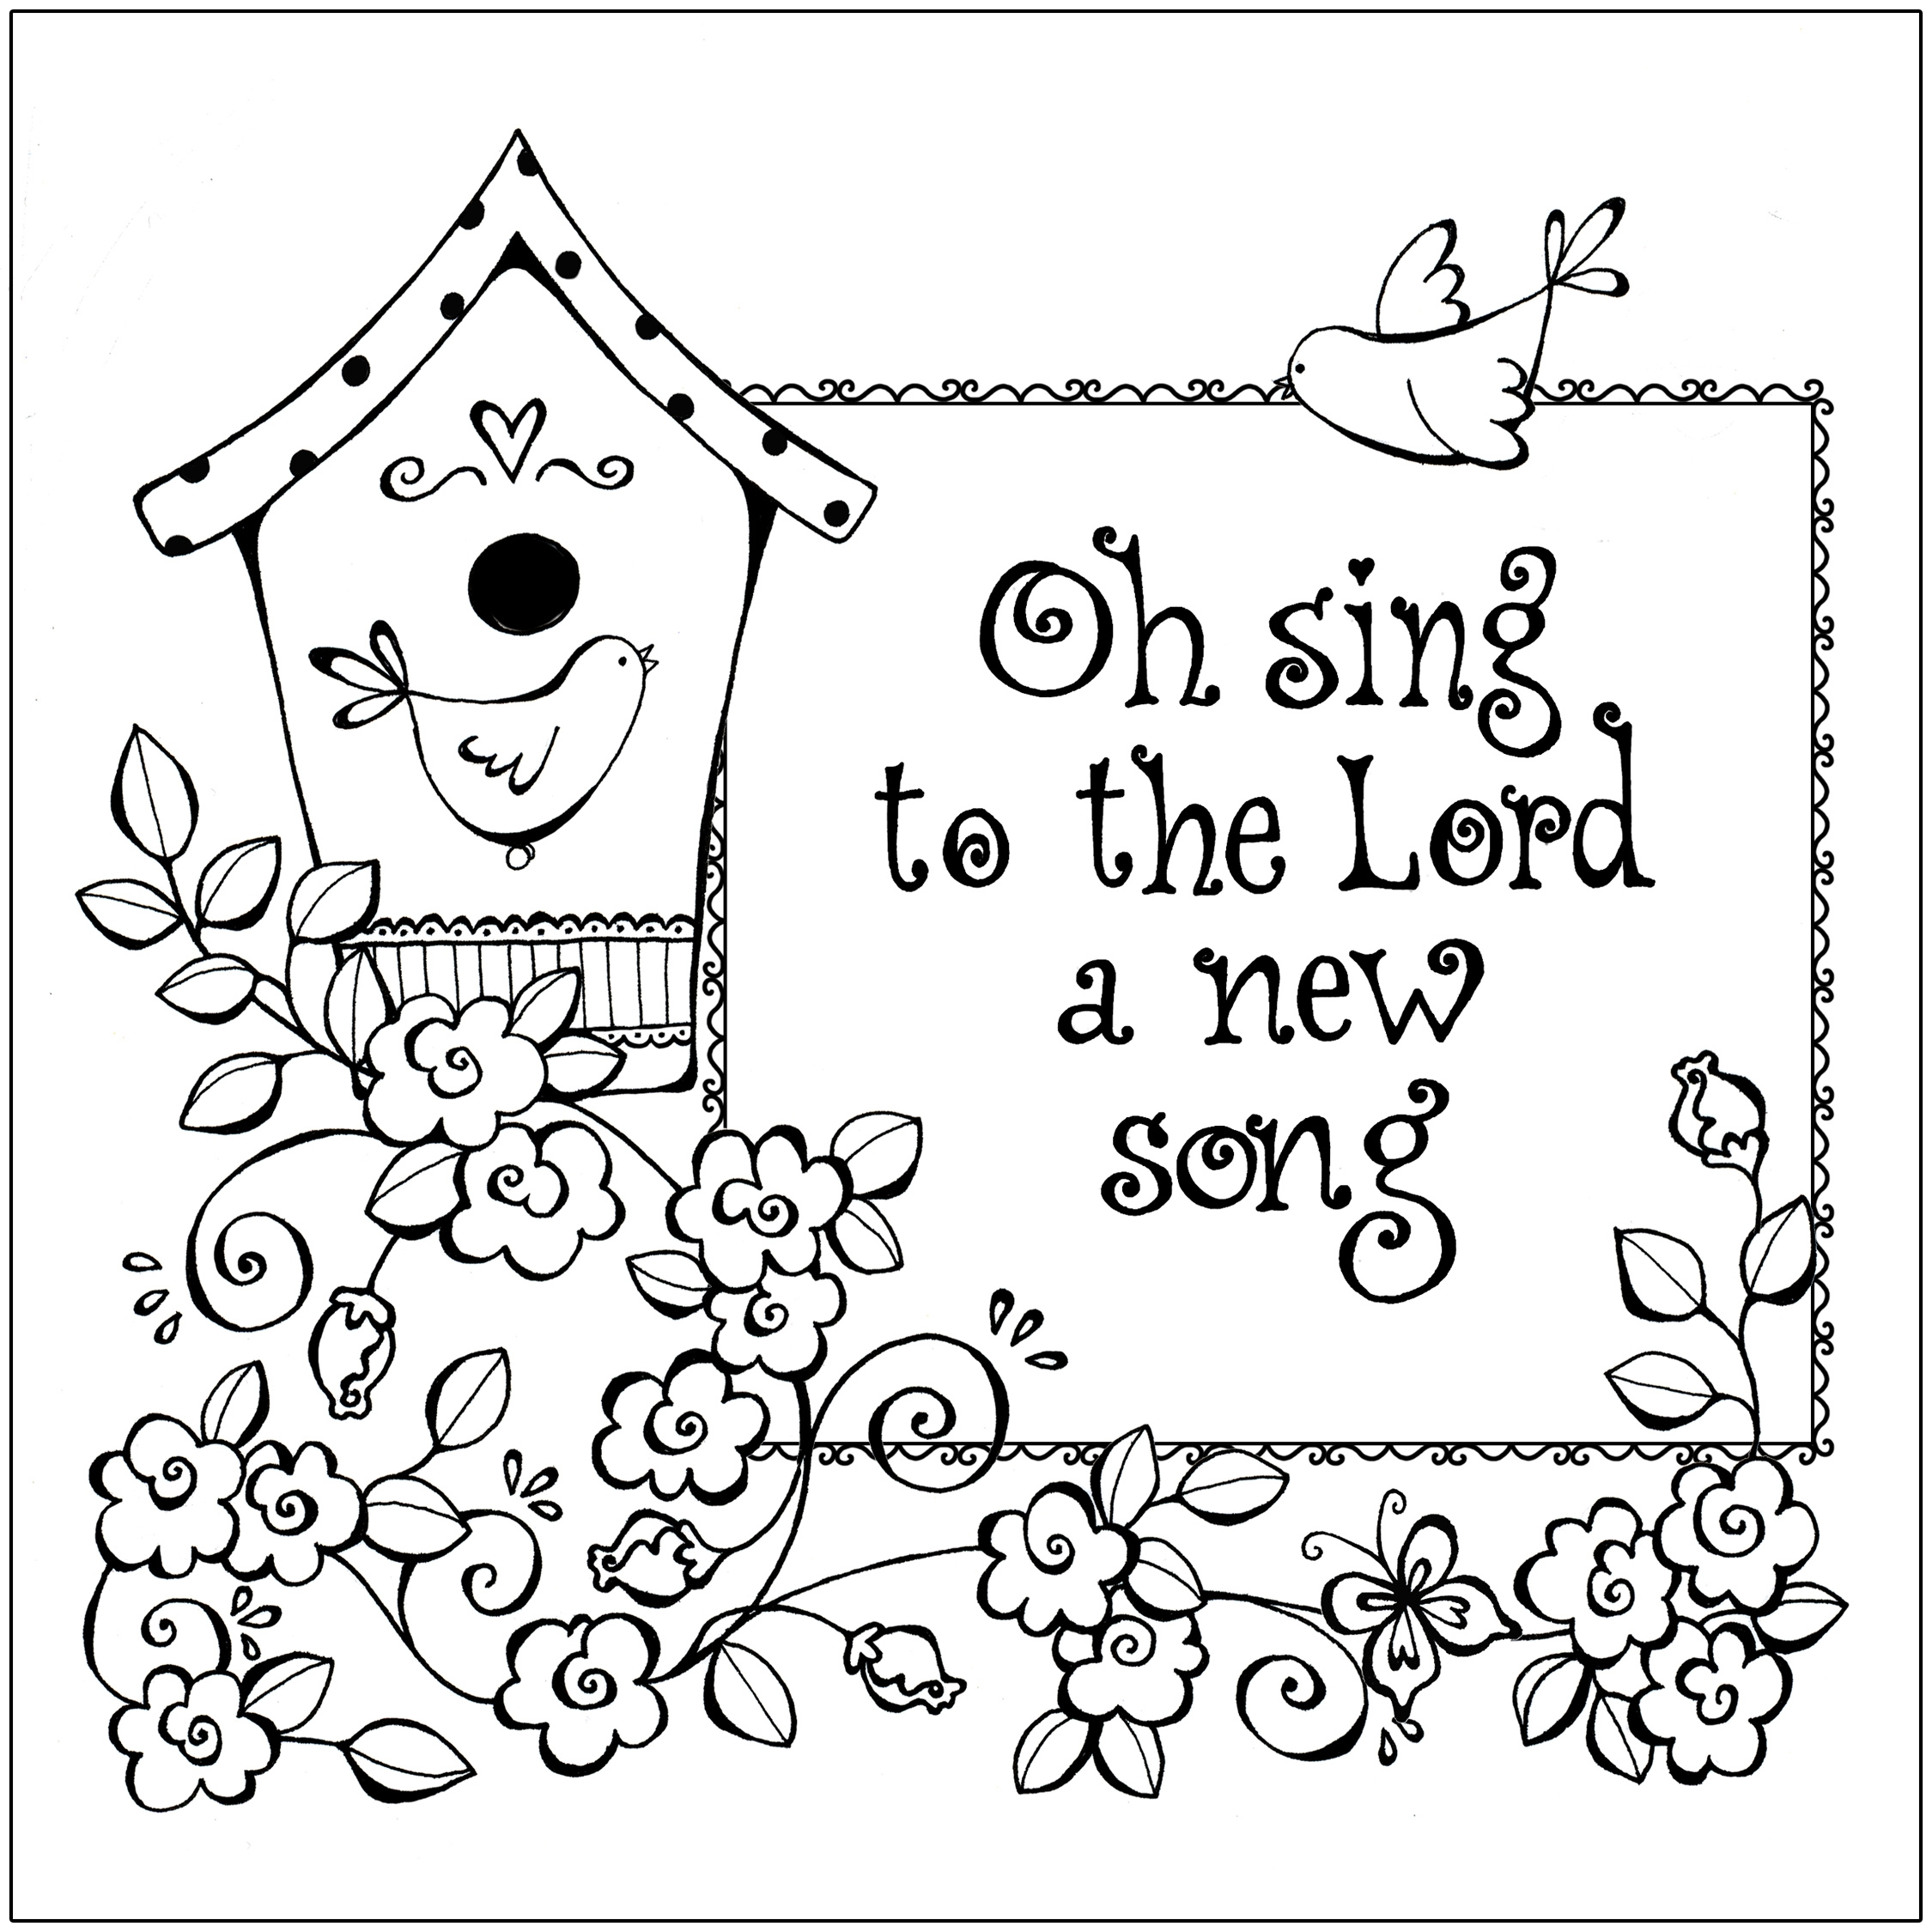 Printable Christian Coloring Pages - Free Printable Christian Coloring Pages for Kids Best